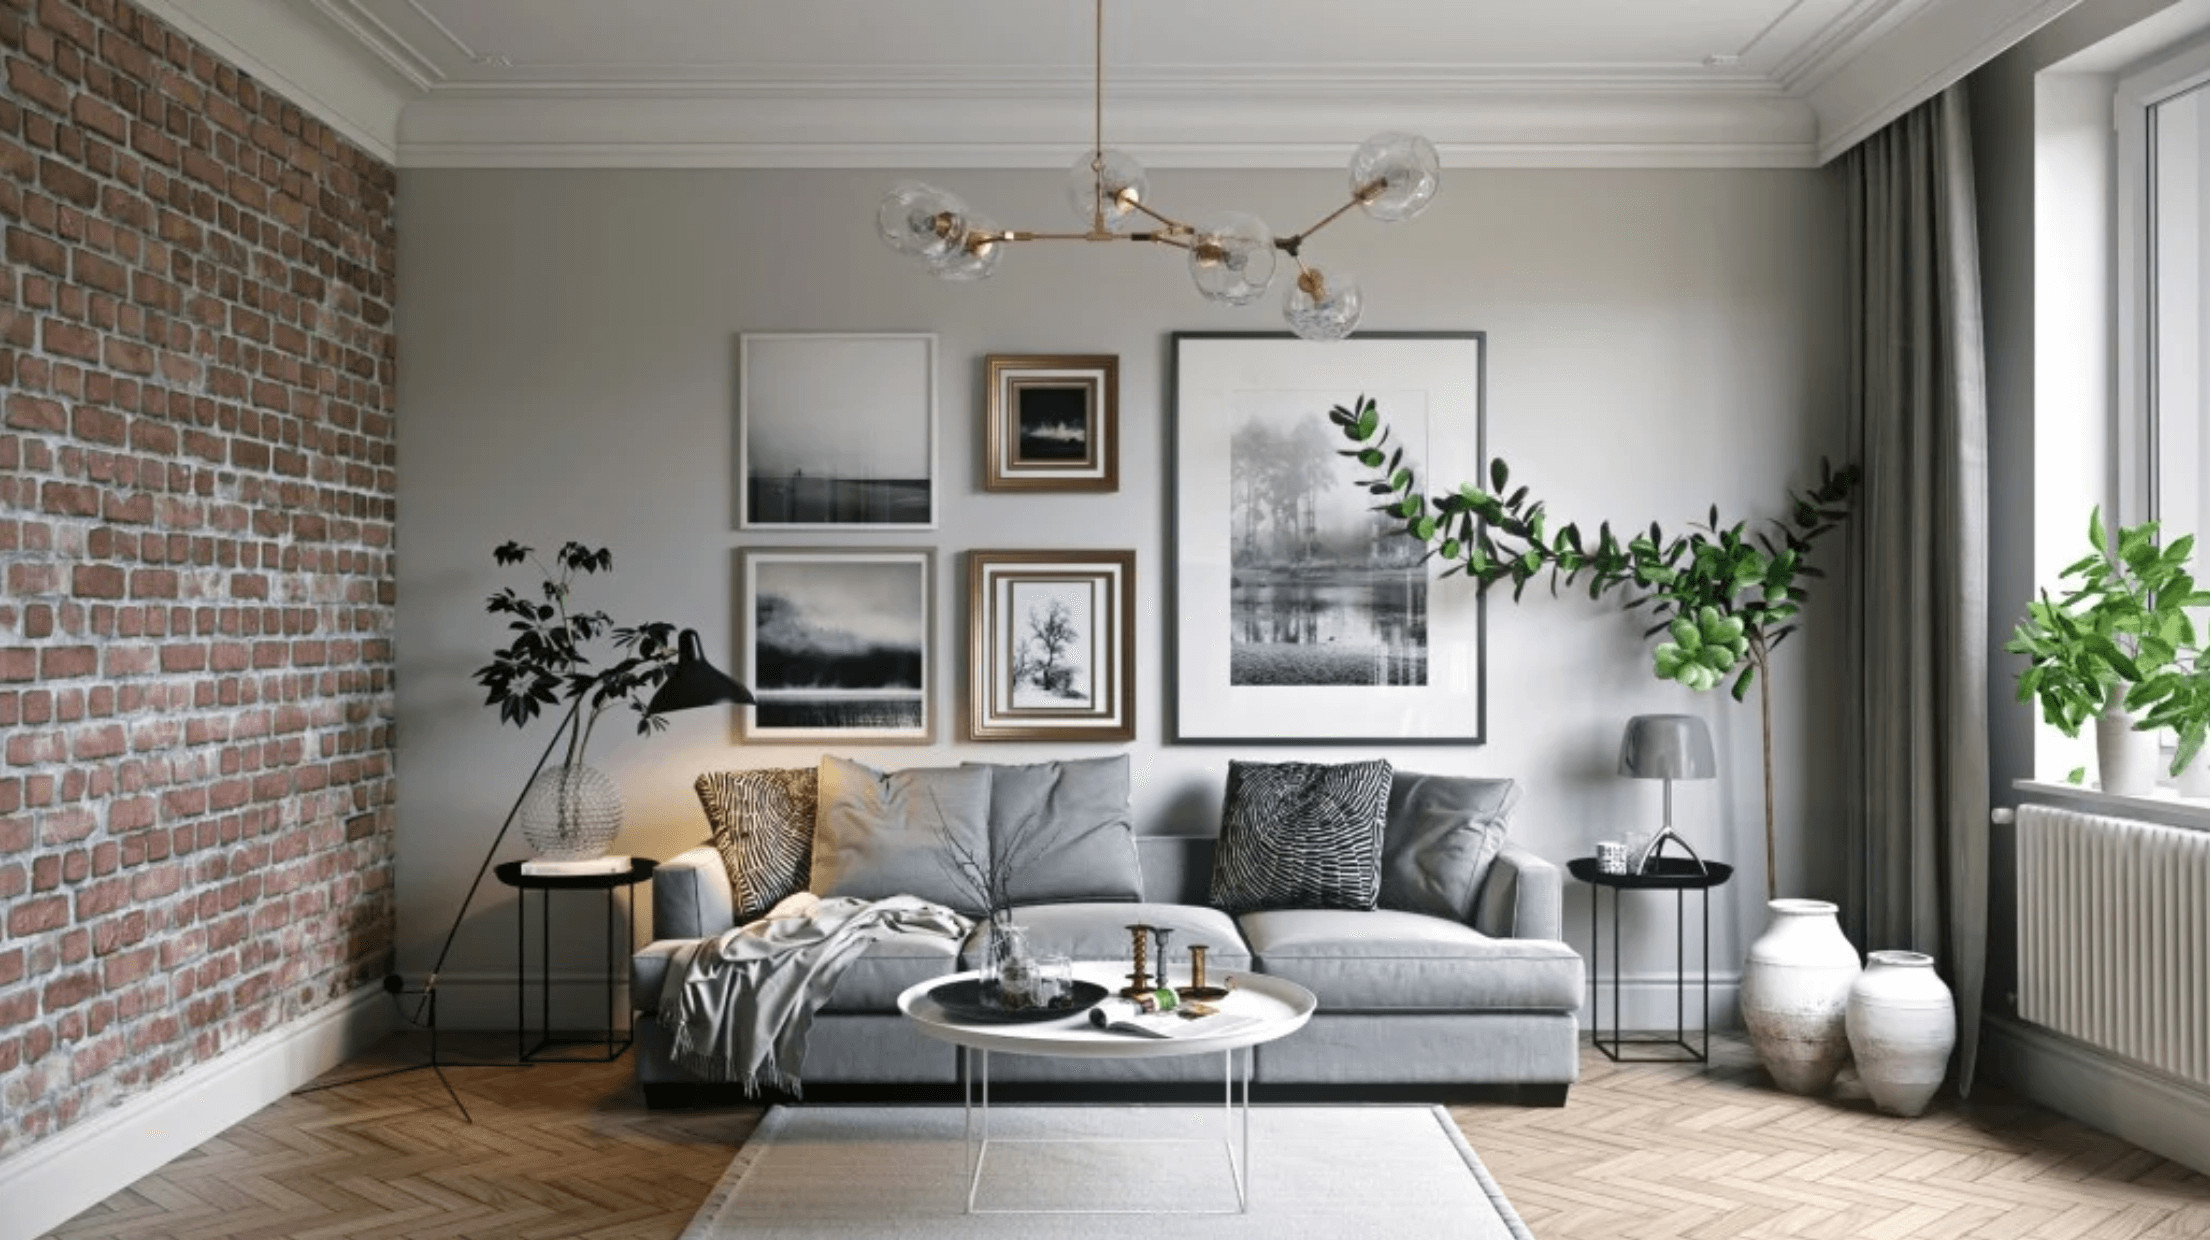 Modern Grey Living Room Decorating Ideas Best Of Modern Interior Design 10 Best Tips for Creating Beautiful Interiors